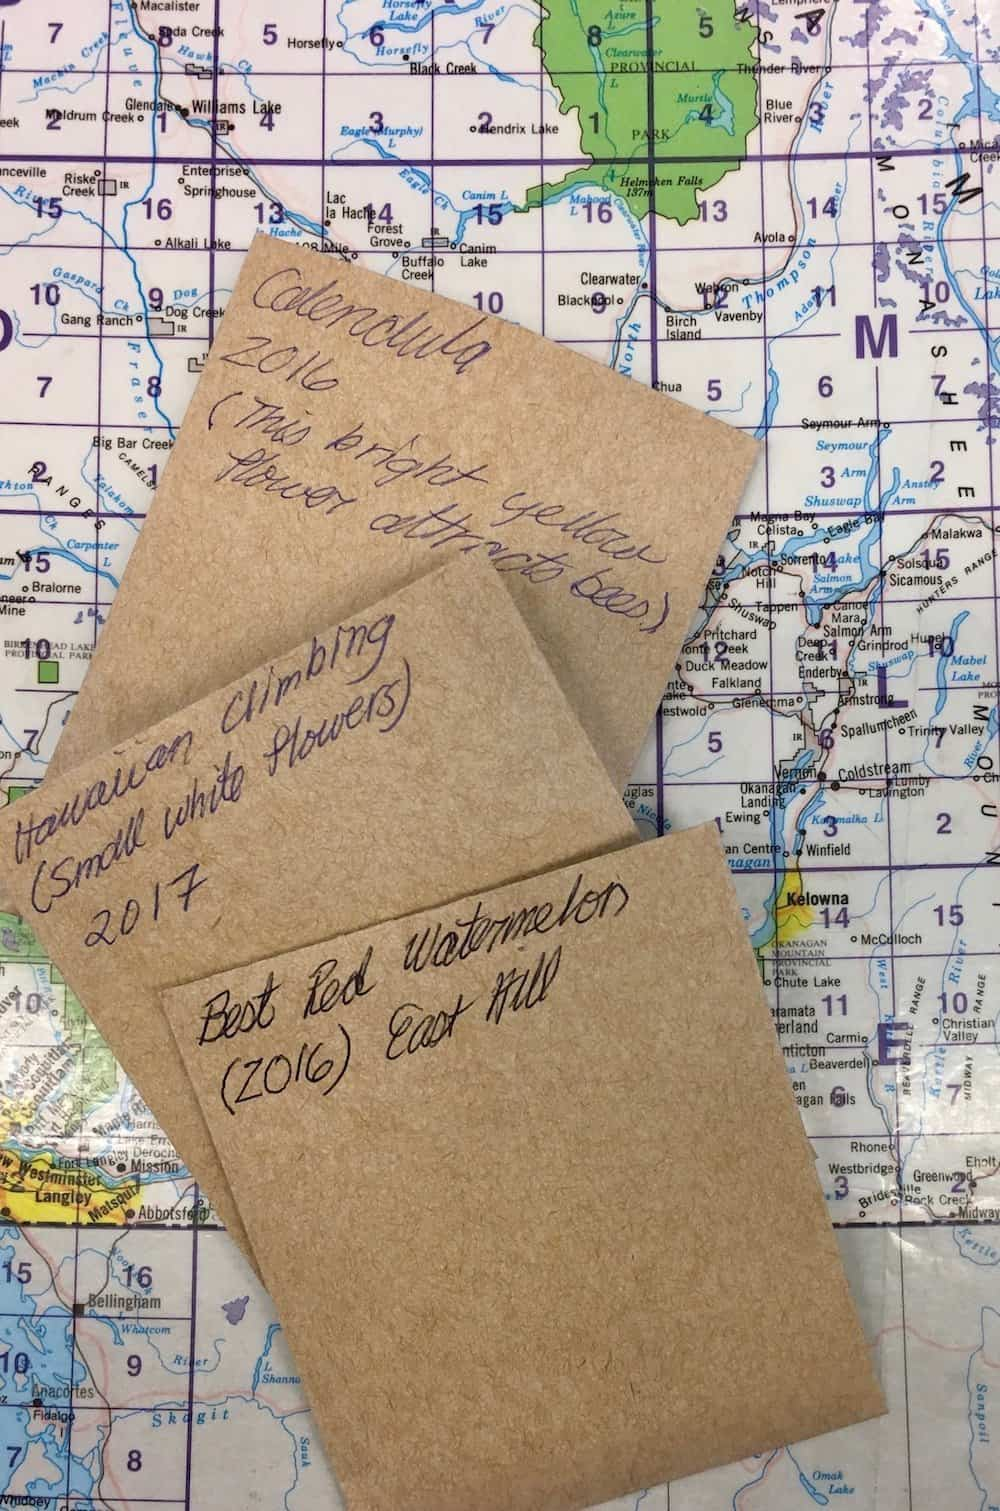 seed collection packets at a local seed library on top of area map